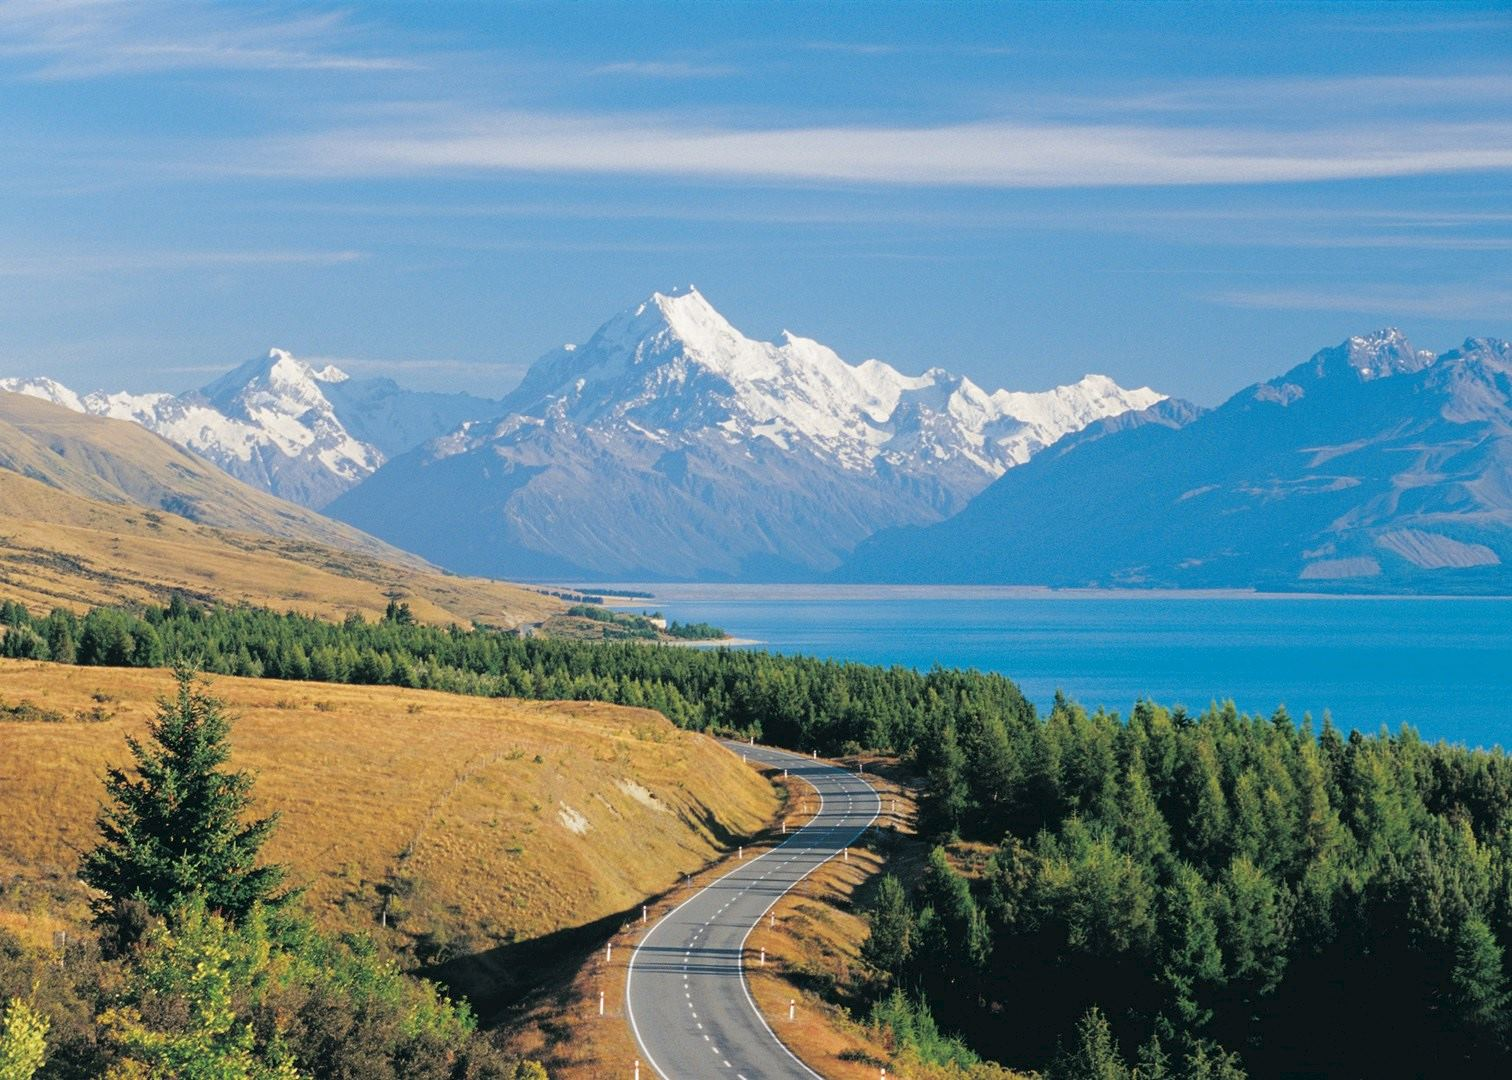 New Zealand: Mount Cook National Park, New Zealand